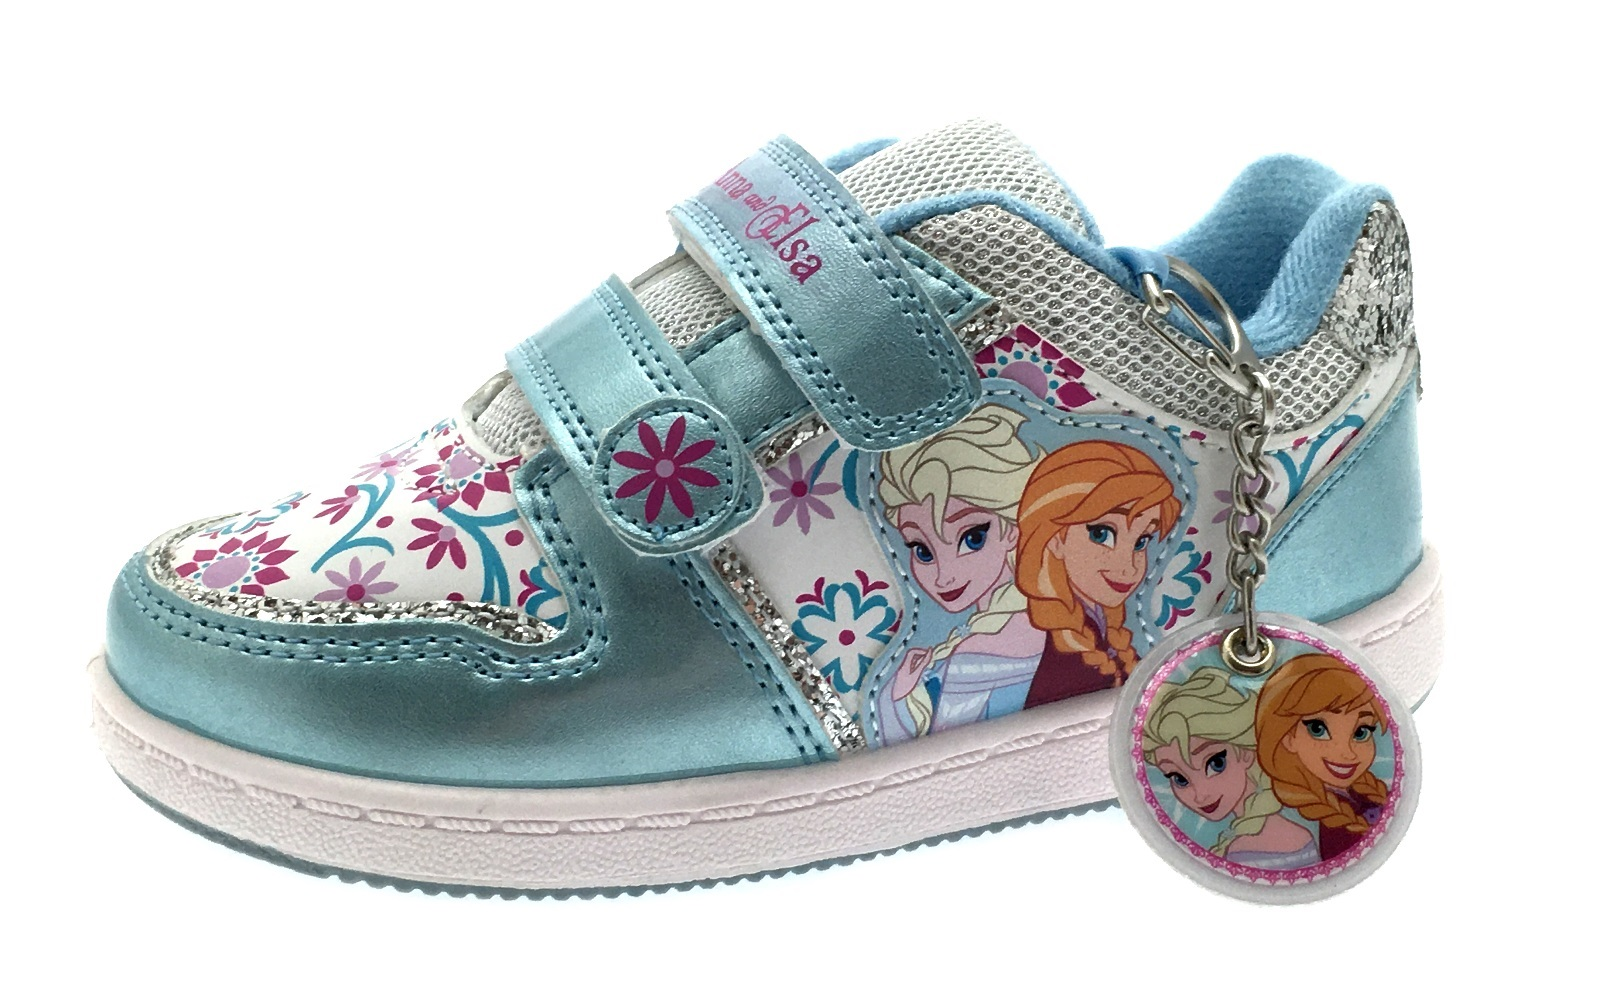 24c5f6f24f8eb Details about Girls Frozen Elsa Olaf Glitter Trainers Character Sports  Shoes Kids Size UK 7-13